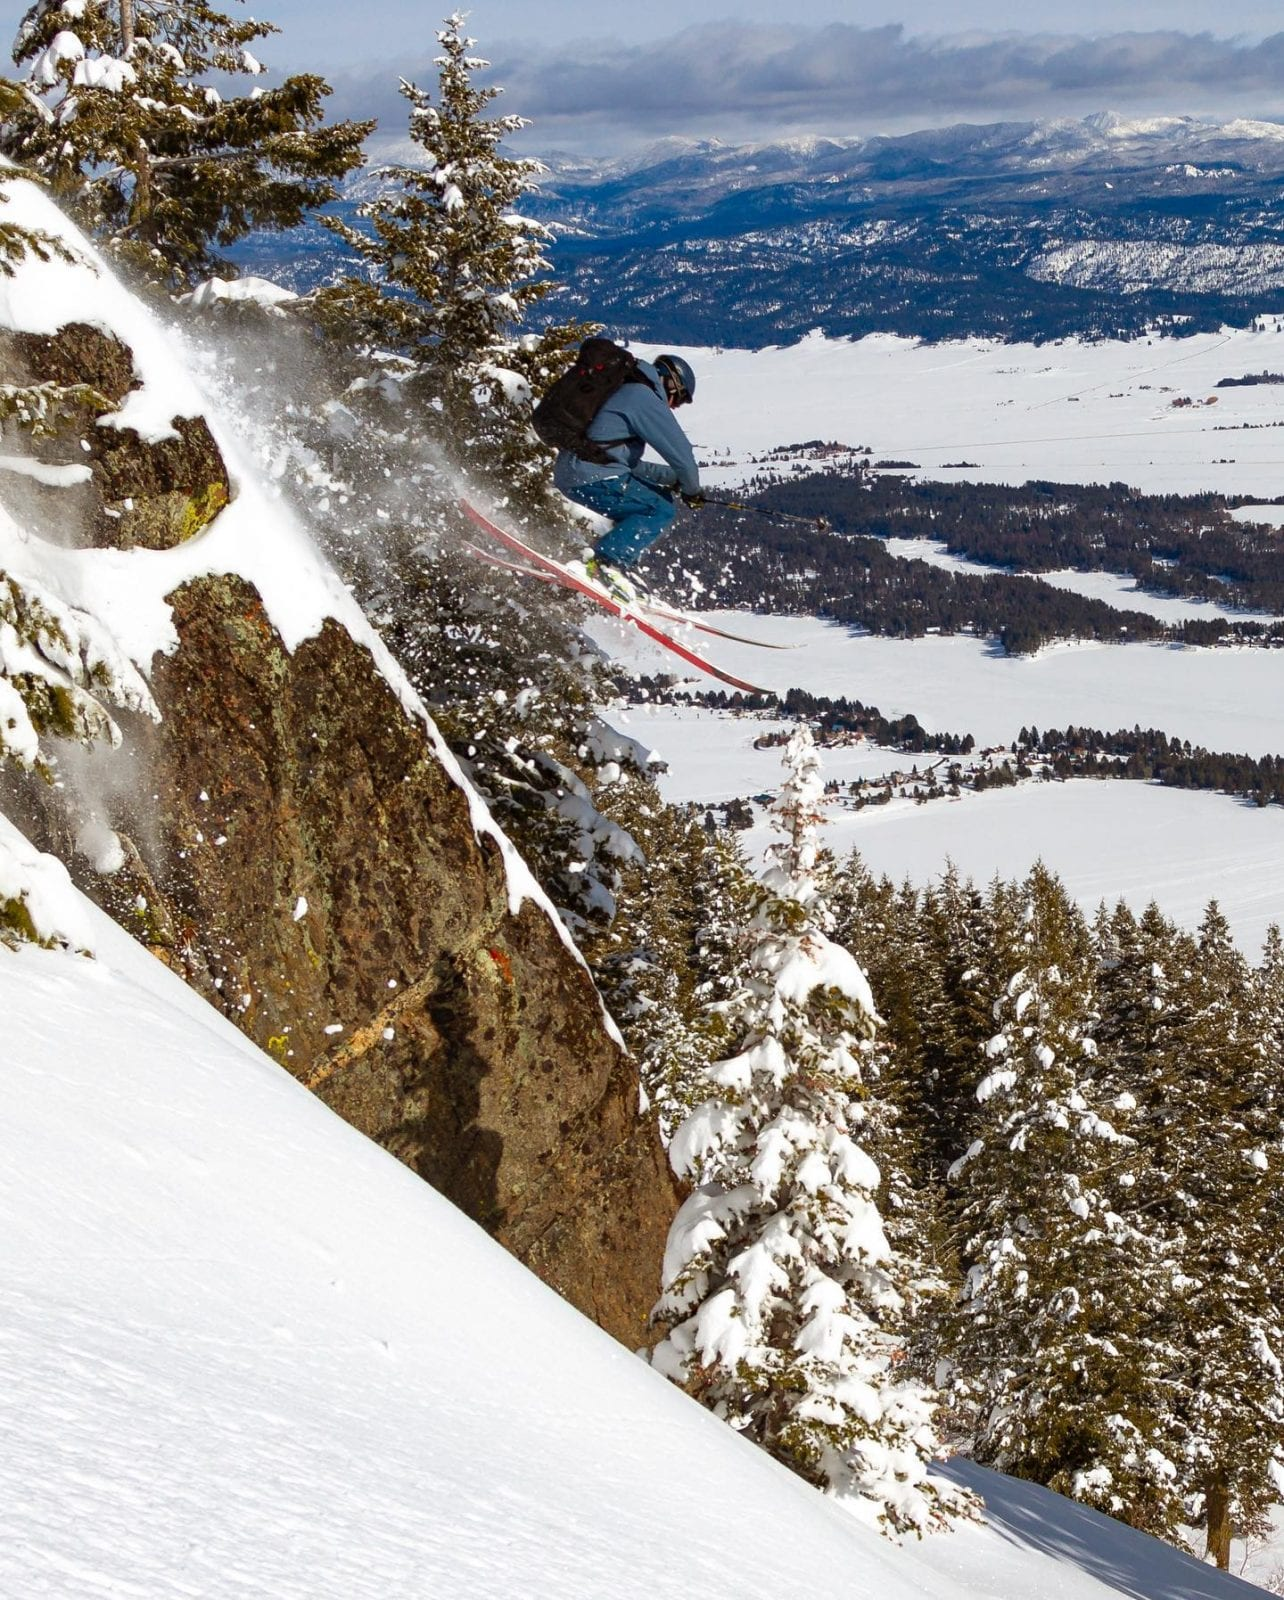 Image of a skier jumping off a cliff at Tamarack Resort in Idaho